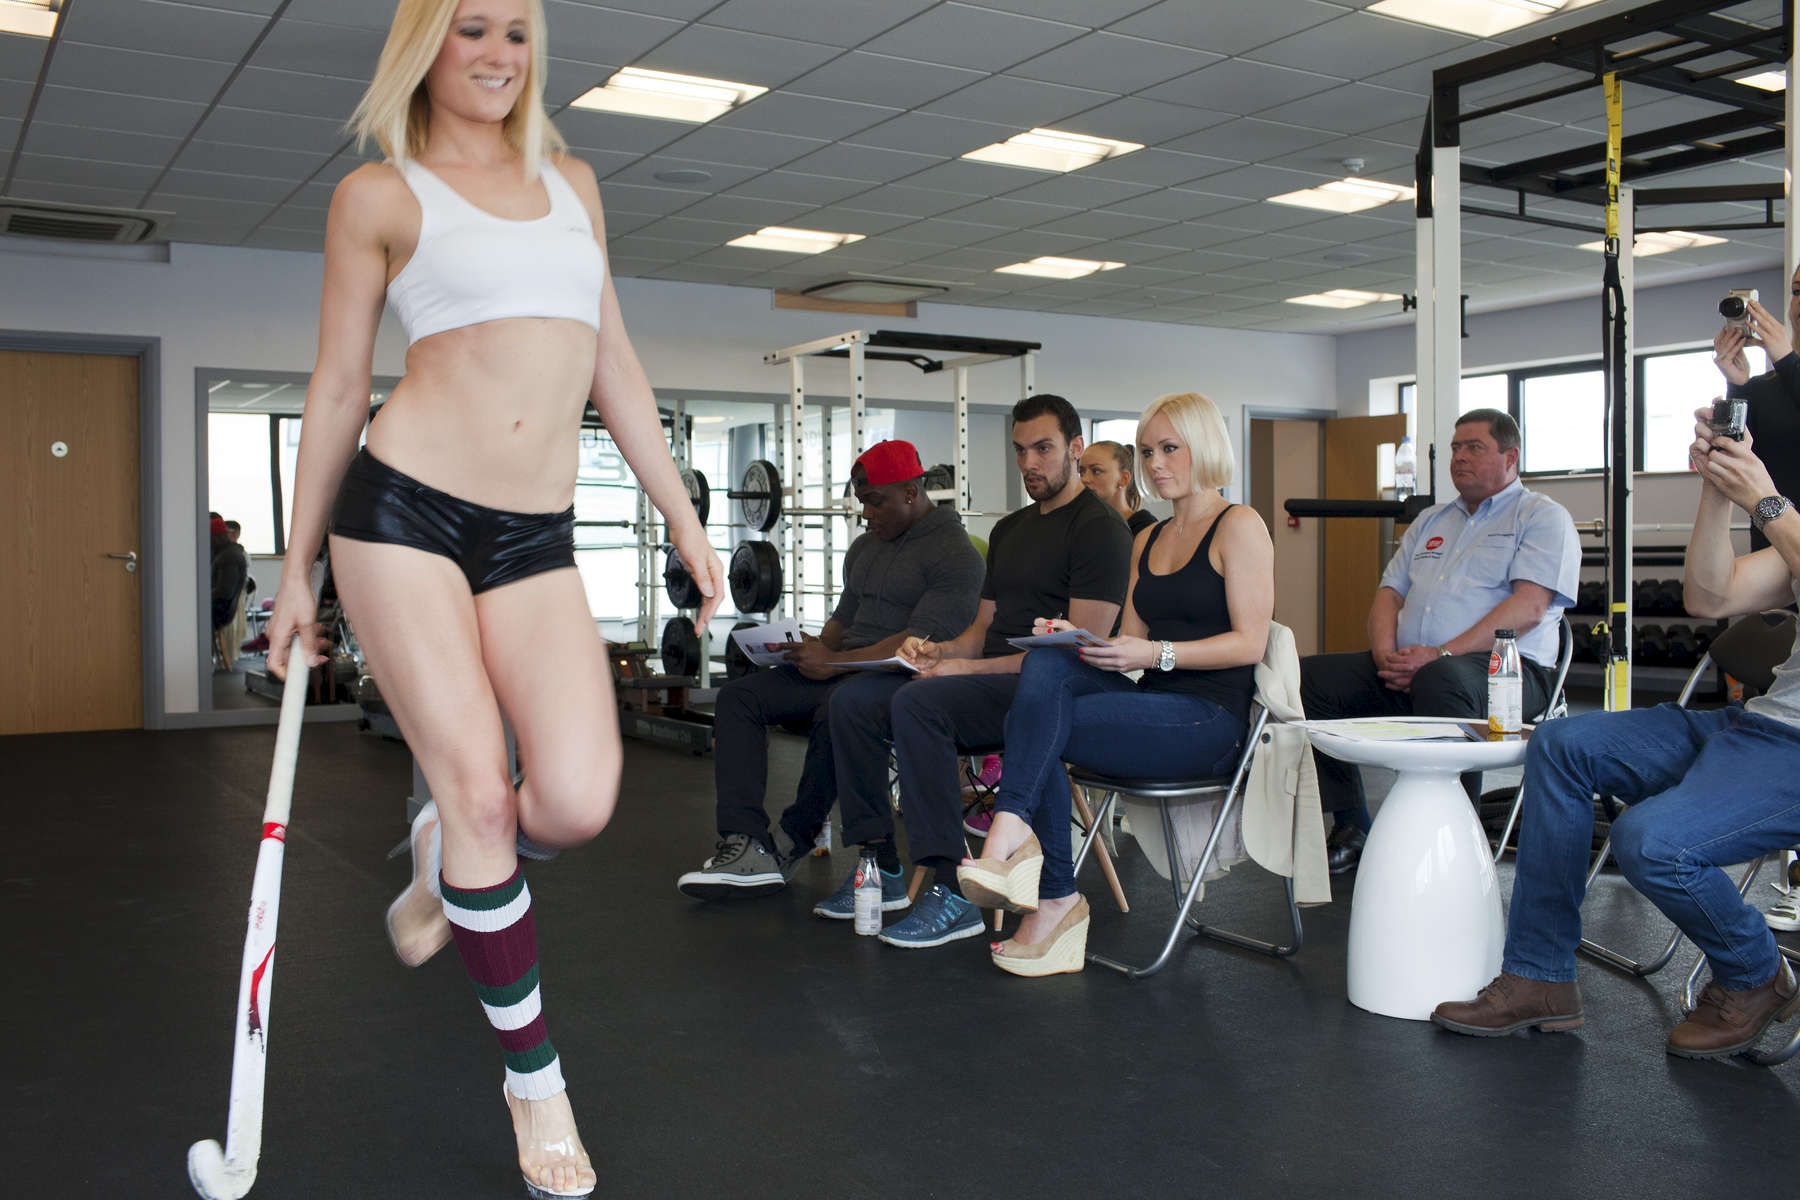 A competitive fitness modelling boot camp at the Emma Louise Burrows studio in Loughton, Essex.Emma Louise Burrows is a fitness champion, elite personal trainer, fitness competitor coach, presenter and model.Emma Louise Burrows is a fitness champion, elite personal trainer, fitness competitor coach, presenter and model.©Peter Dench/Getty Images Reportage